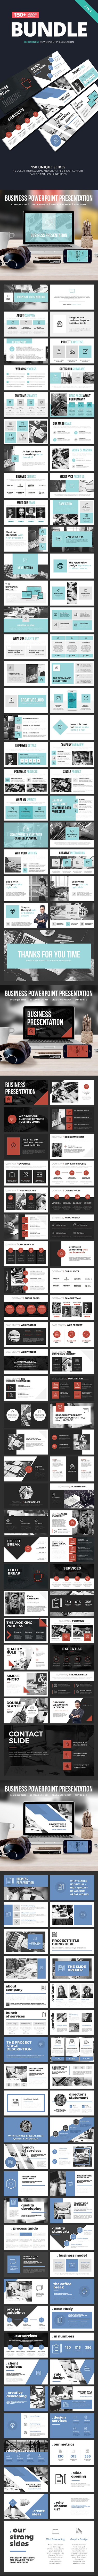 Business Powerpoint Bundle — Powerpoint PPT #pitch deck #planner • Download ➝ https://graphicriver.net/item/business-powerpoint-bundle/19465150?ref=pxcr